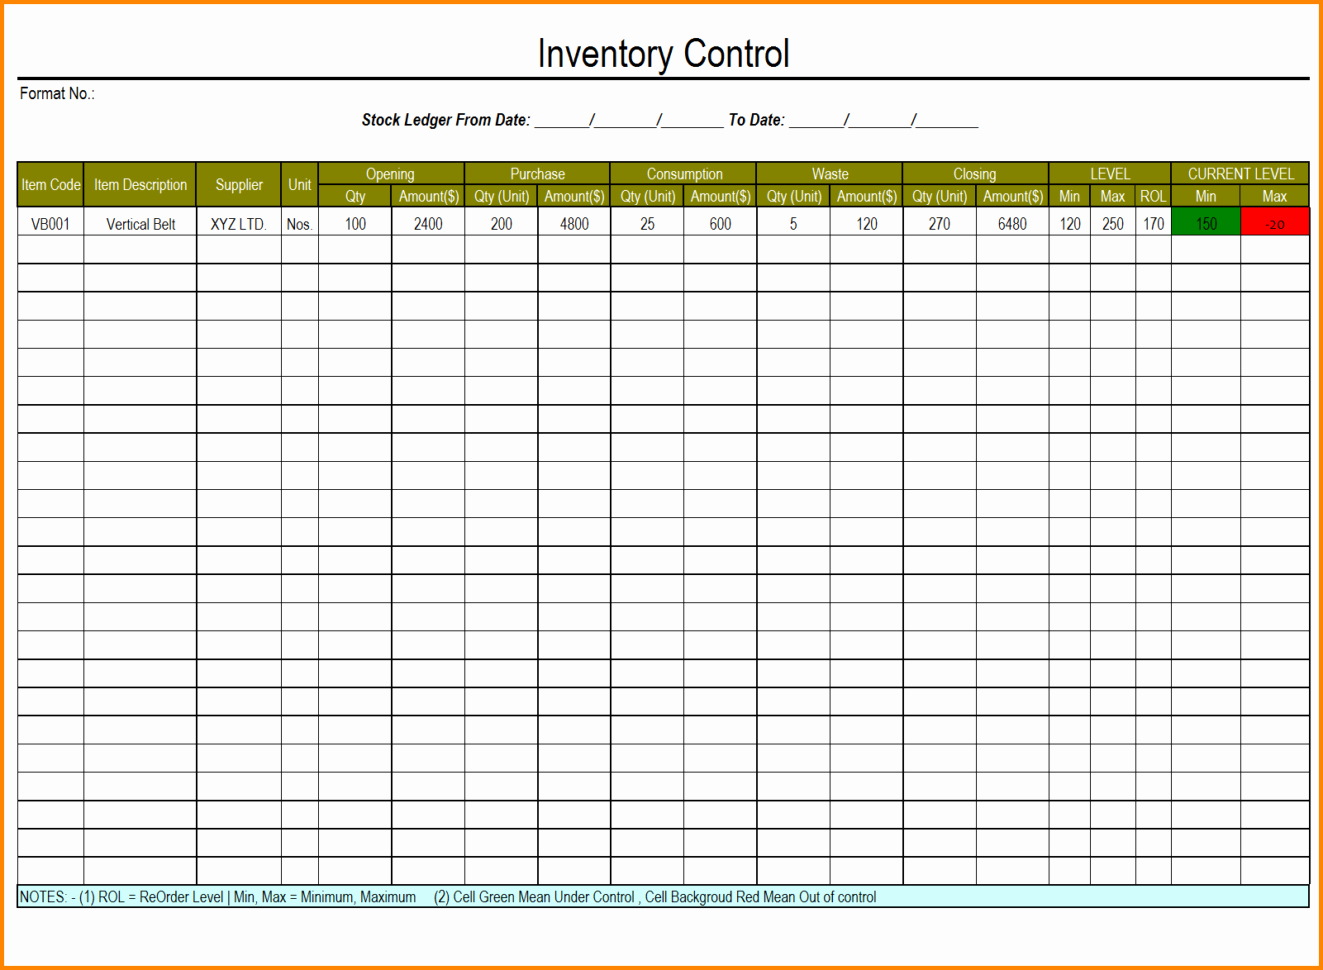 Inventory Sheet Template Excel Fresh Excel Inventory Template with formulas 1 Inventory